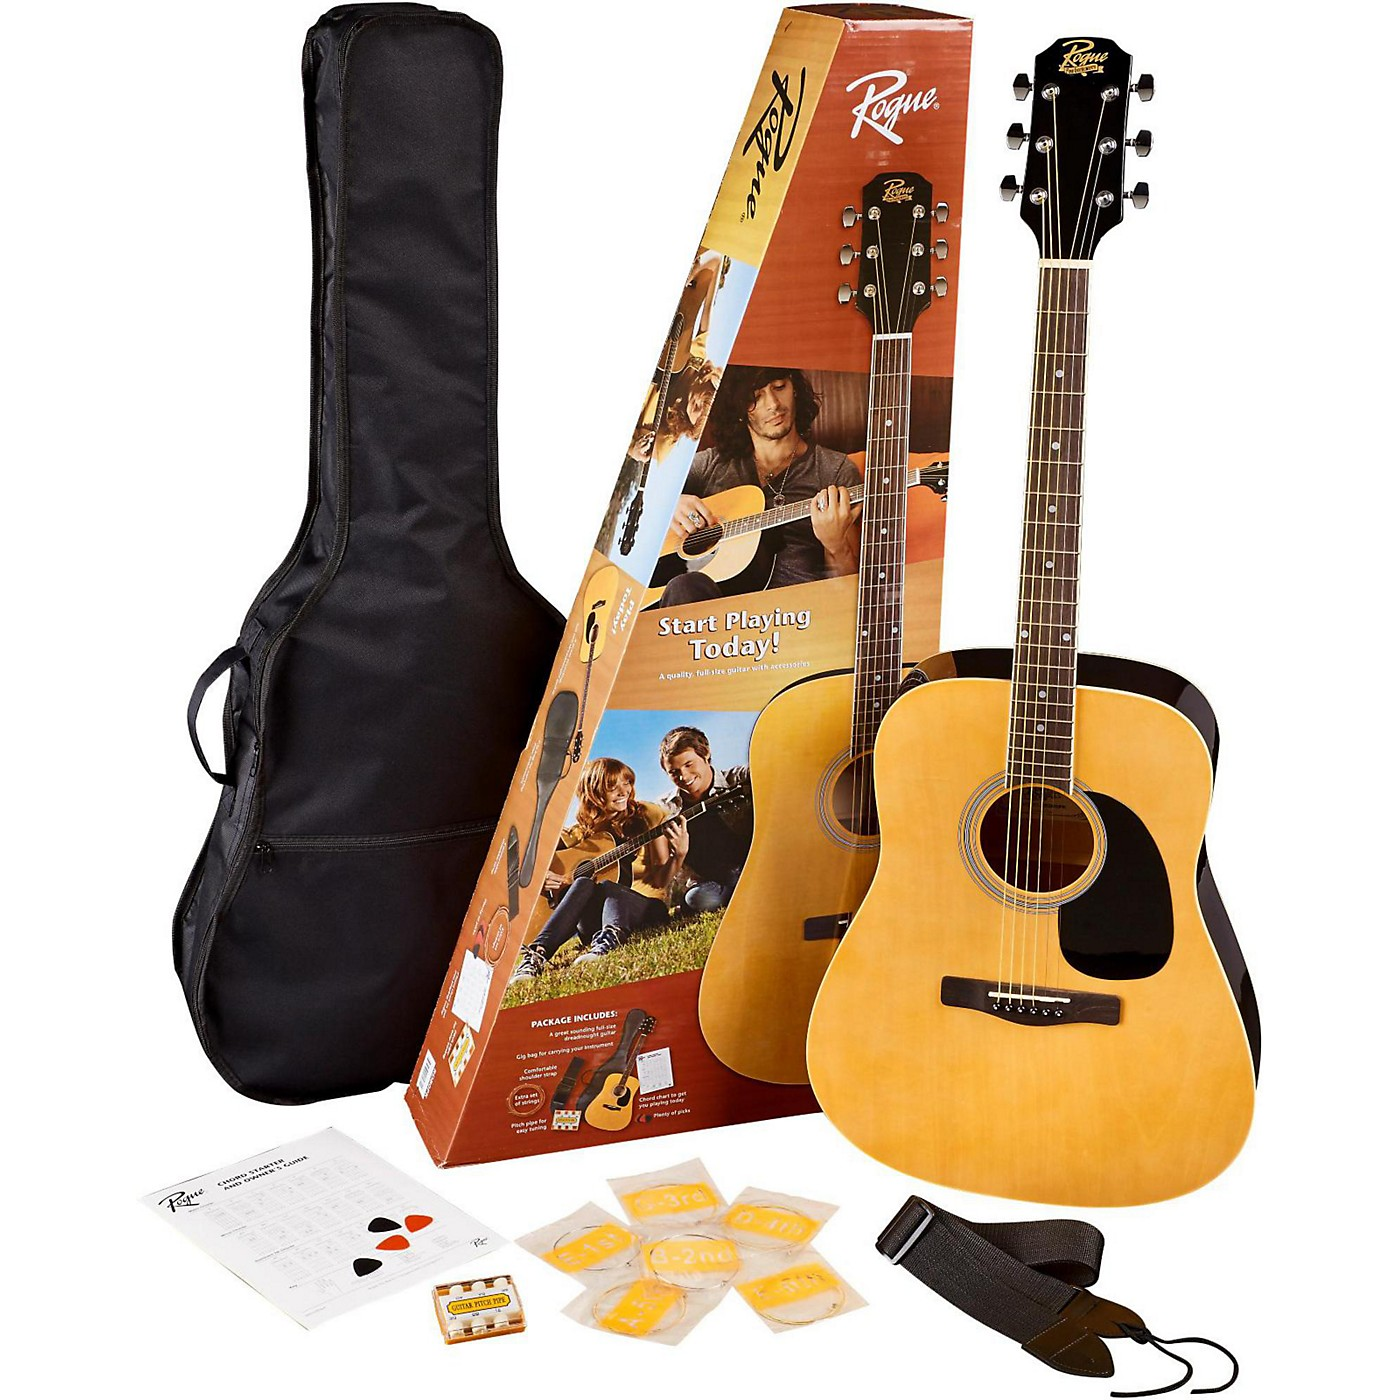 Rogue RD80PK Dreadnought Acoustic Guitar Pack thumbnail